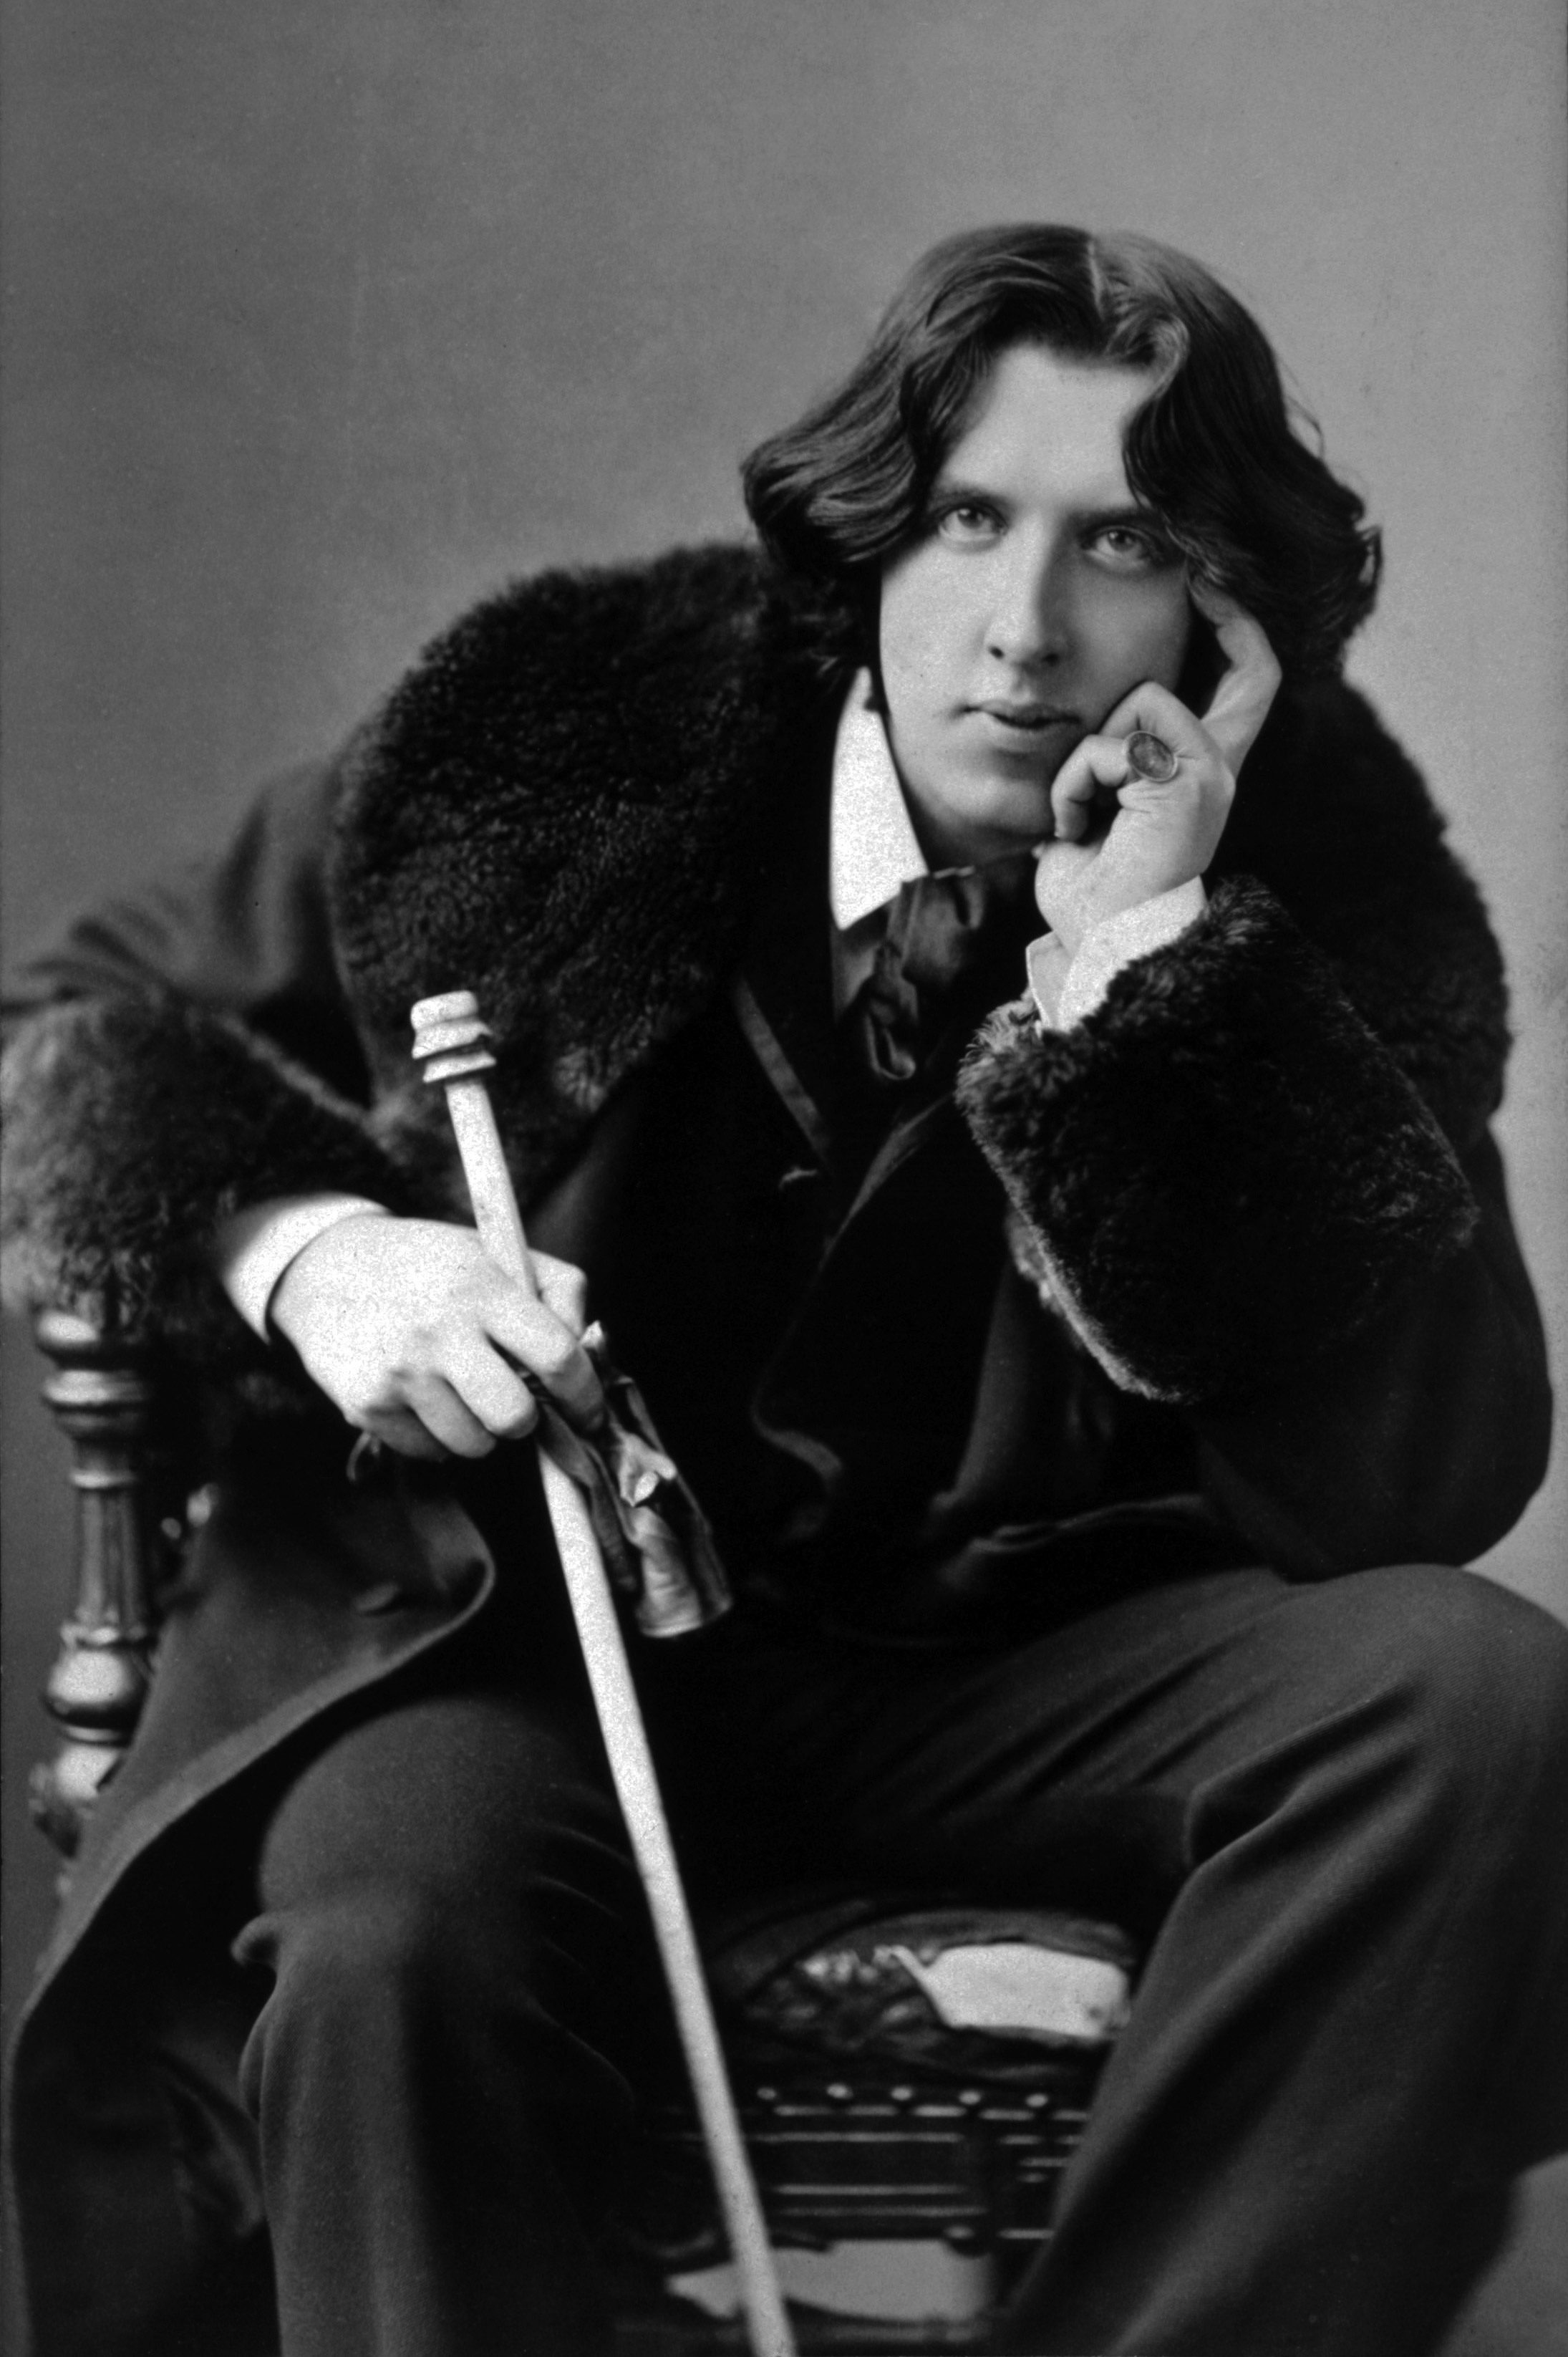 https://i1.wp.com/upload.wikimedia.org/wikipedia/commons/9/9c/Oscar_Wilde_portrait.jpg